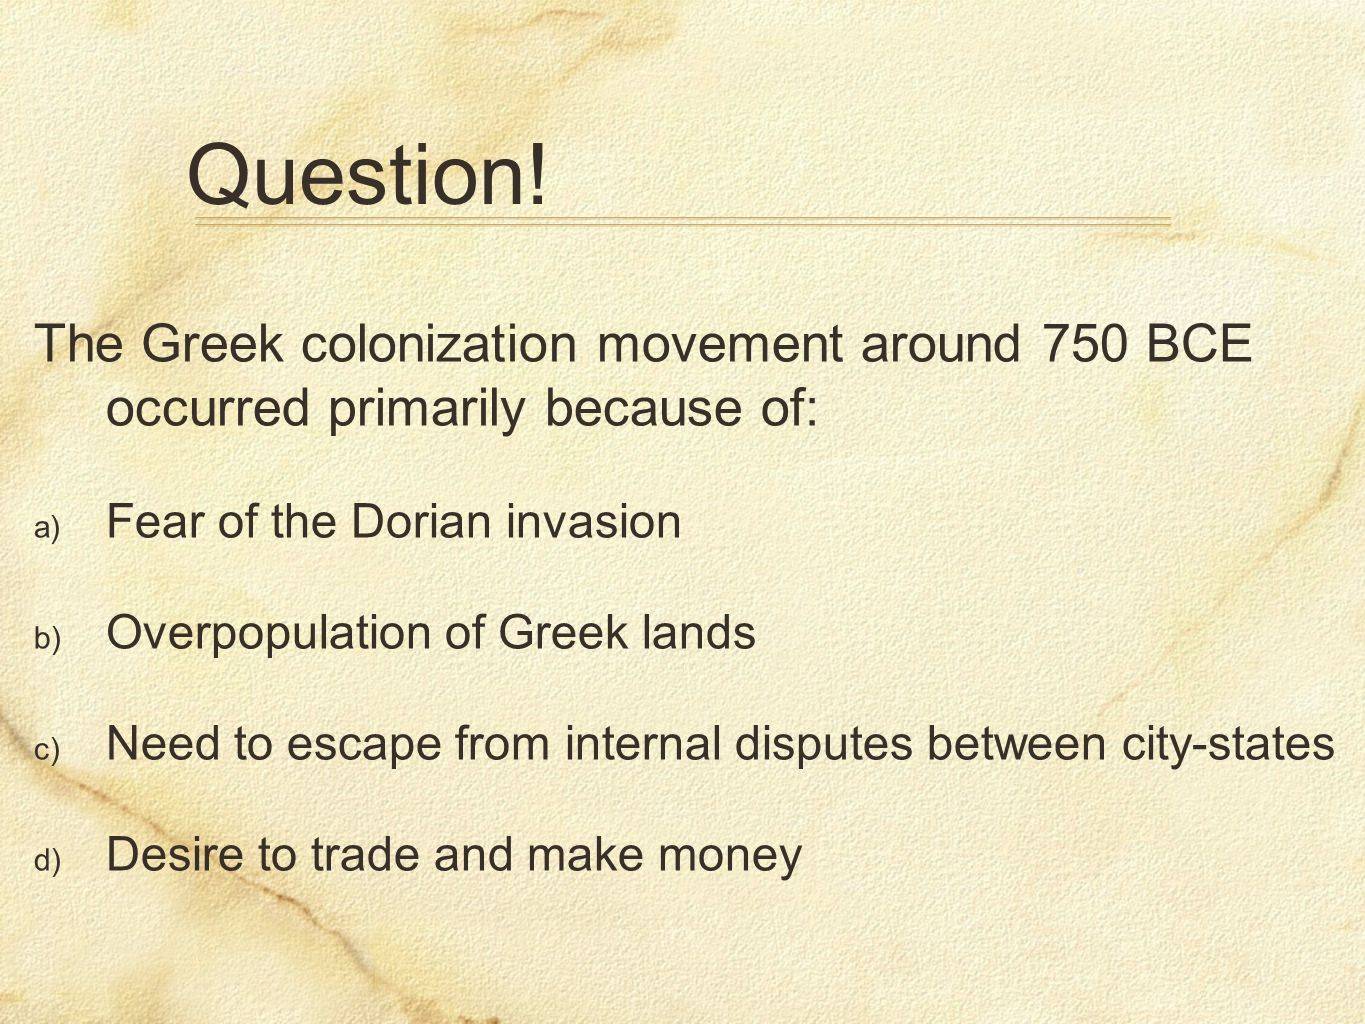 Question!The Greek colonization movement around 750 BCE occurred primarily because of: Fear of the Dorian invasion.